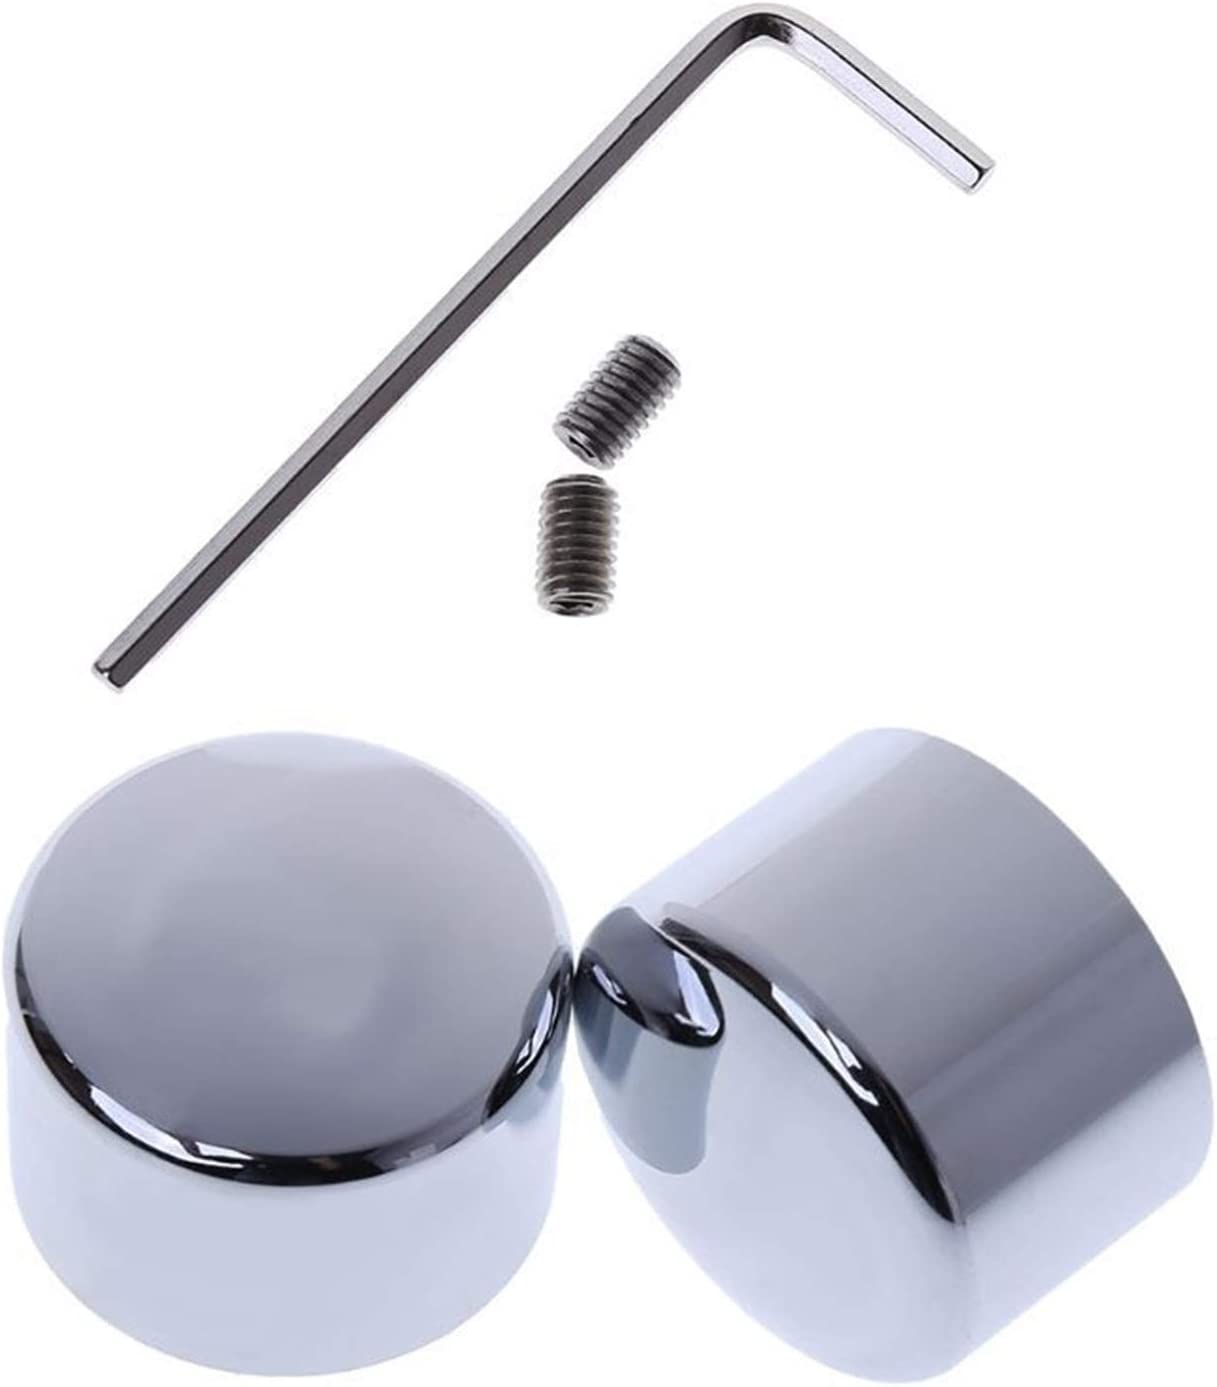 YBMY Front Axle Nut Large-scale sale Cover Cap Touring for Bolt Outlet ☆ Free Shipping Fit Harley Softai